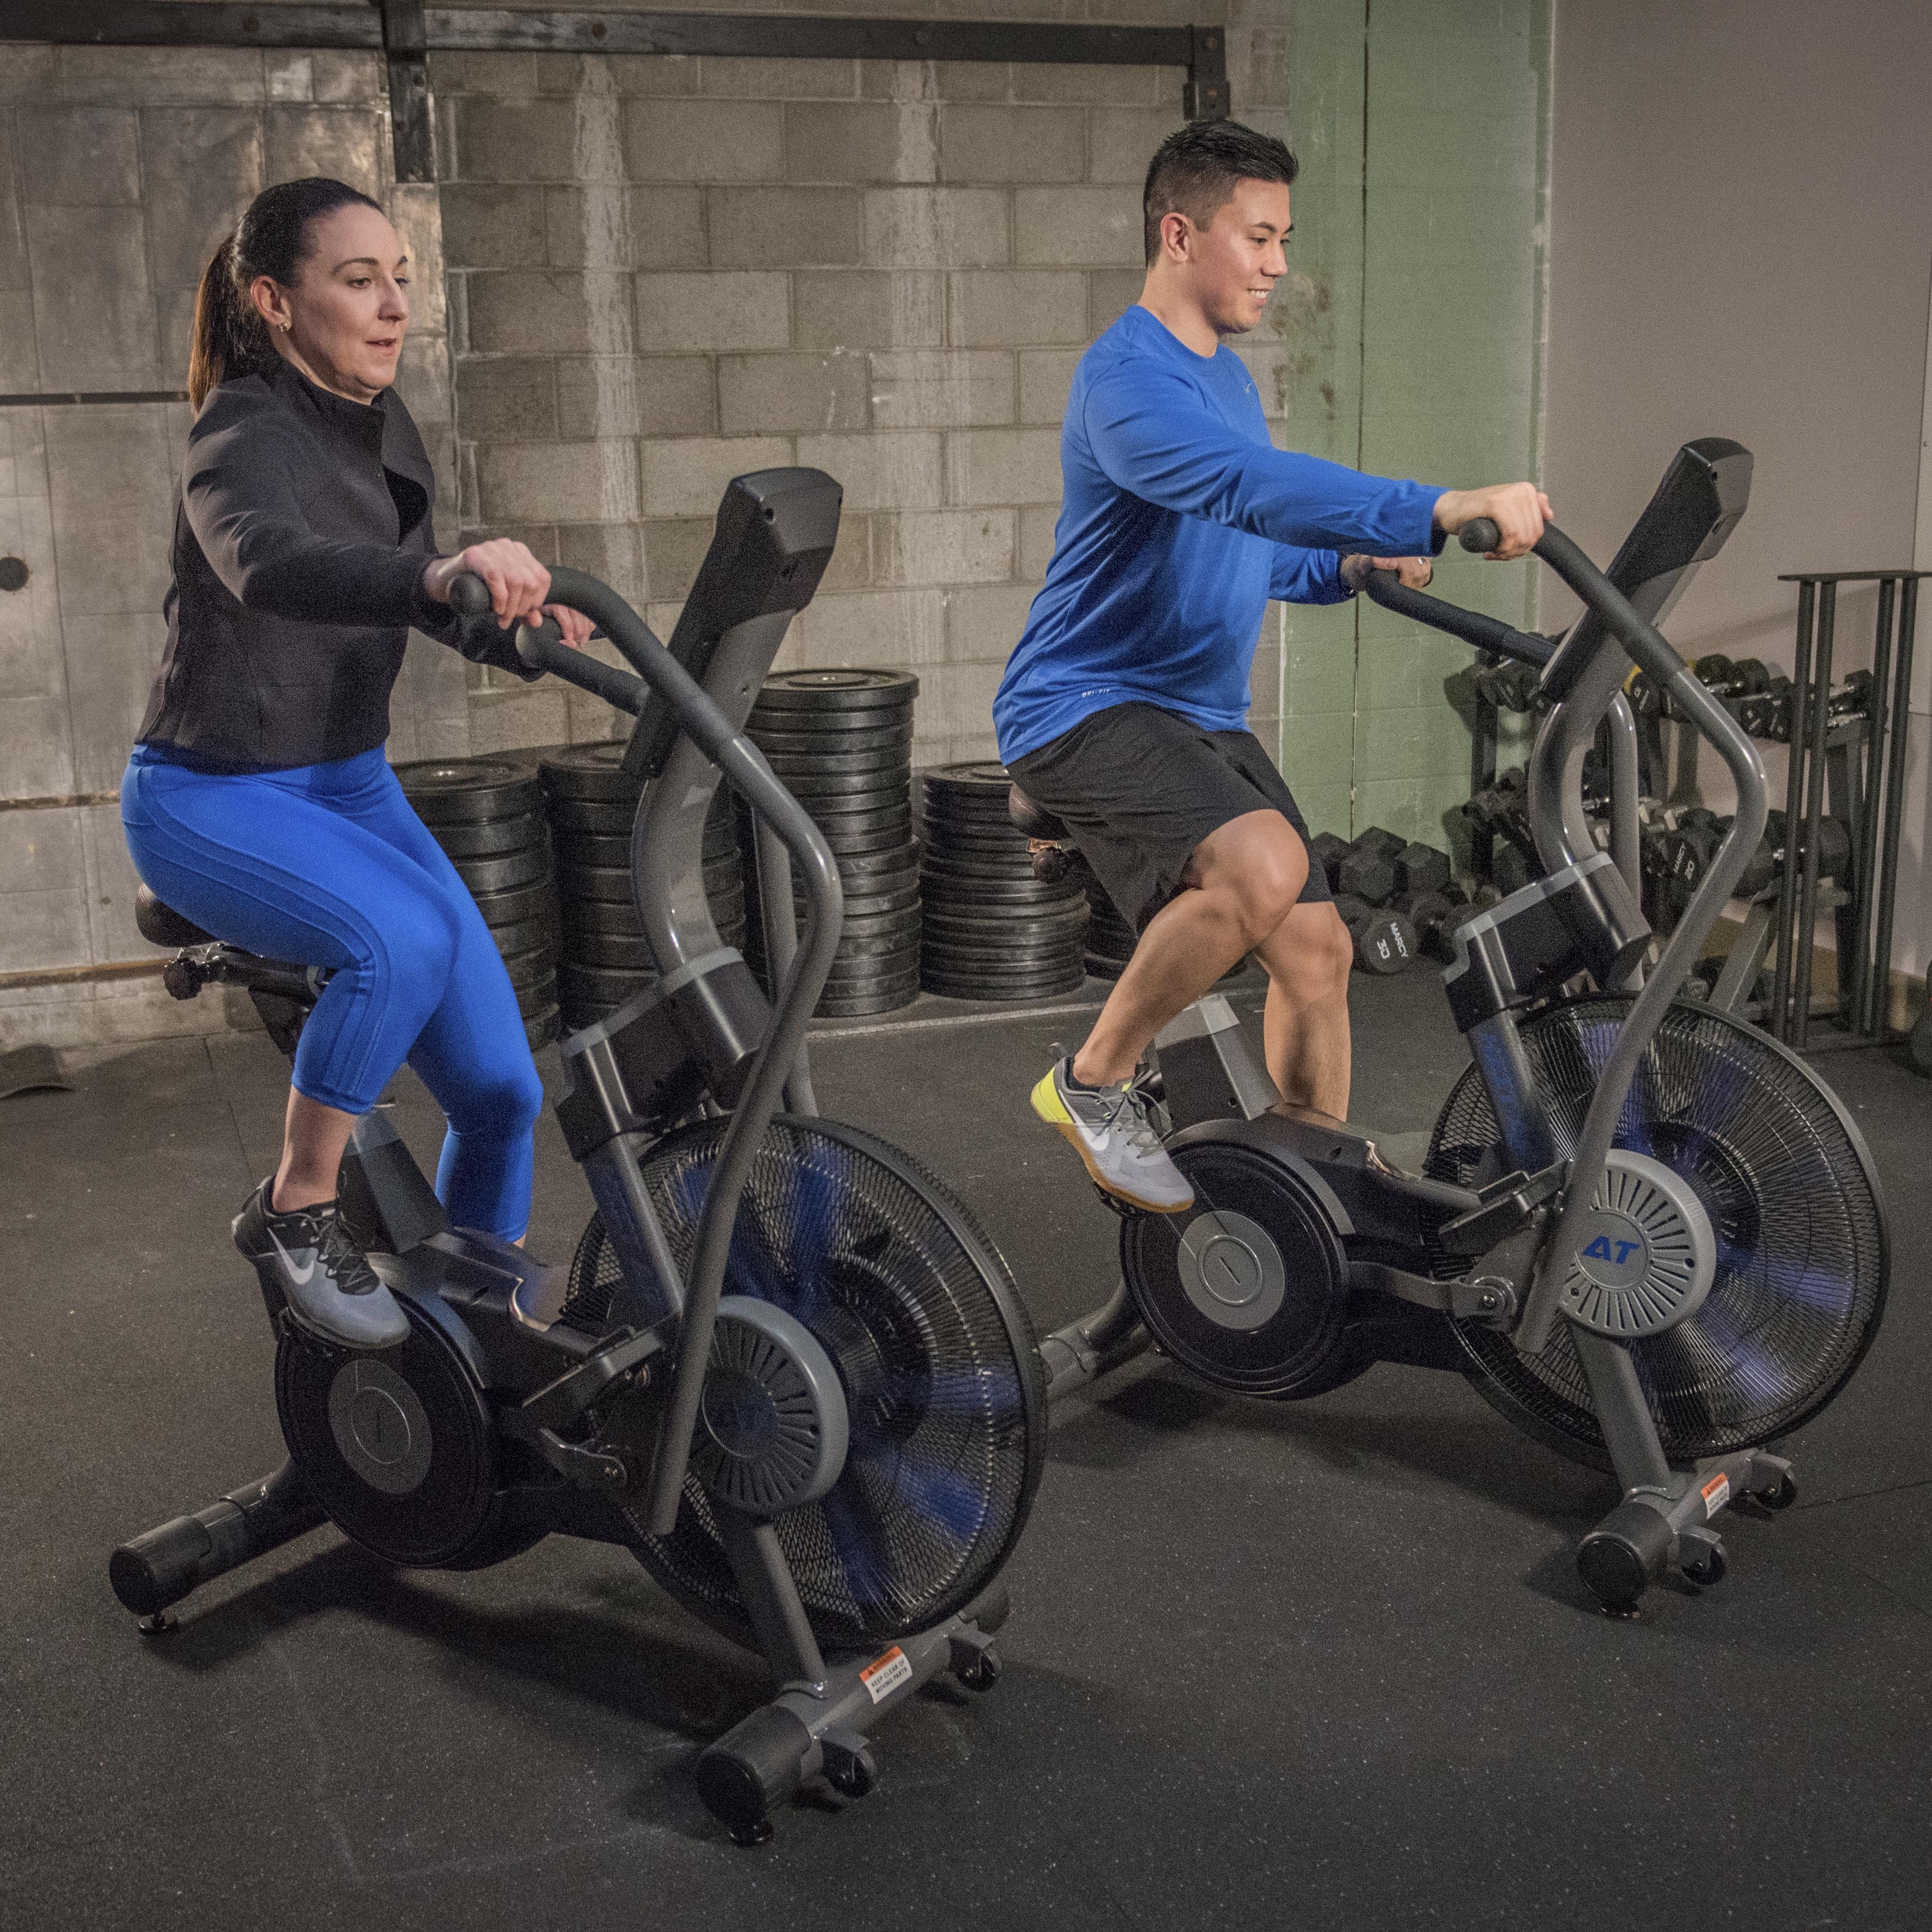 AirTEK Fitness HIIT AirBike Group Workout